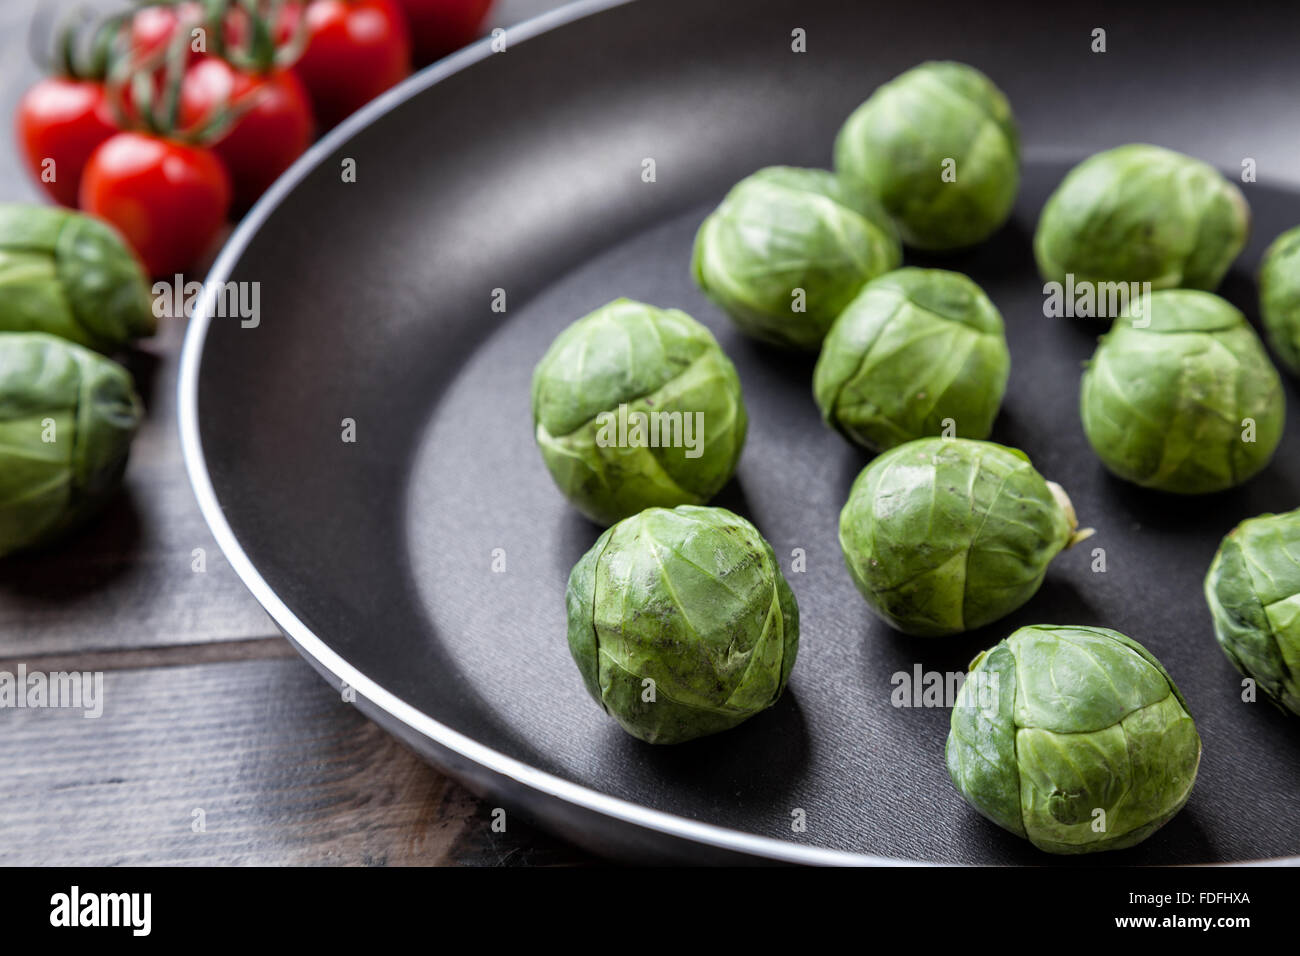 Fresh and healthy organic brussel sprouts in a frying pan - Stock Image